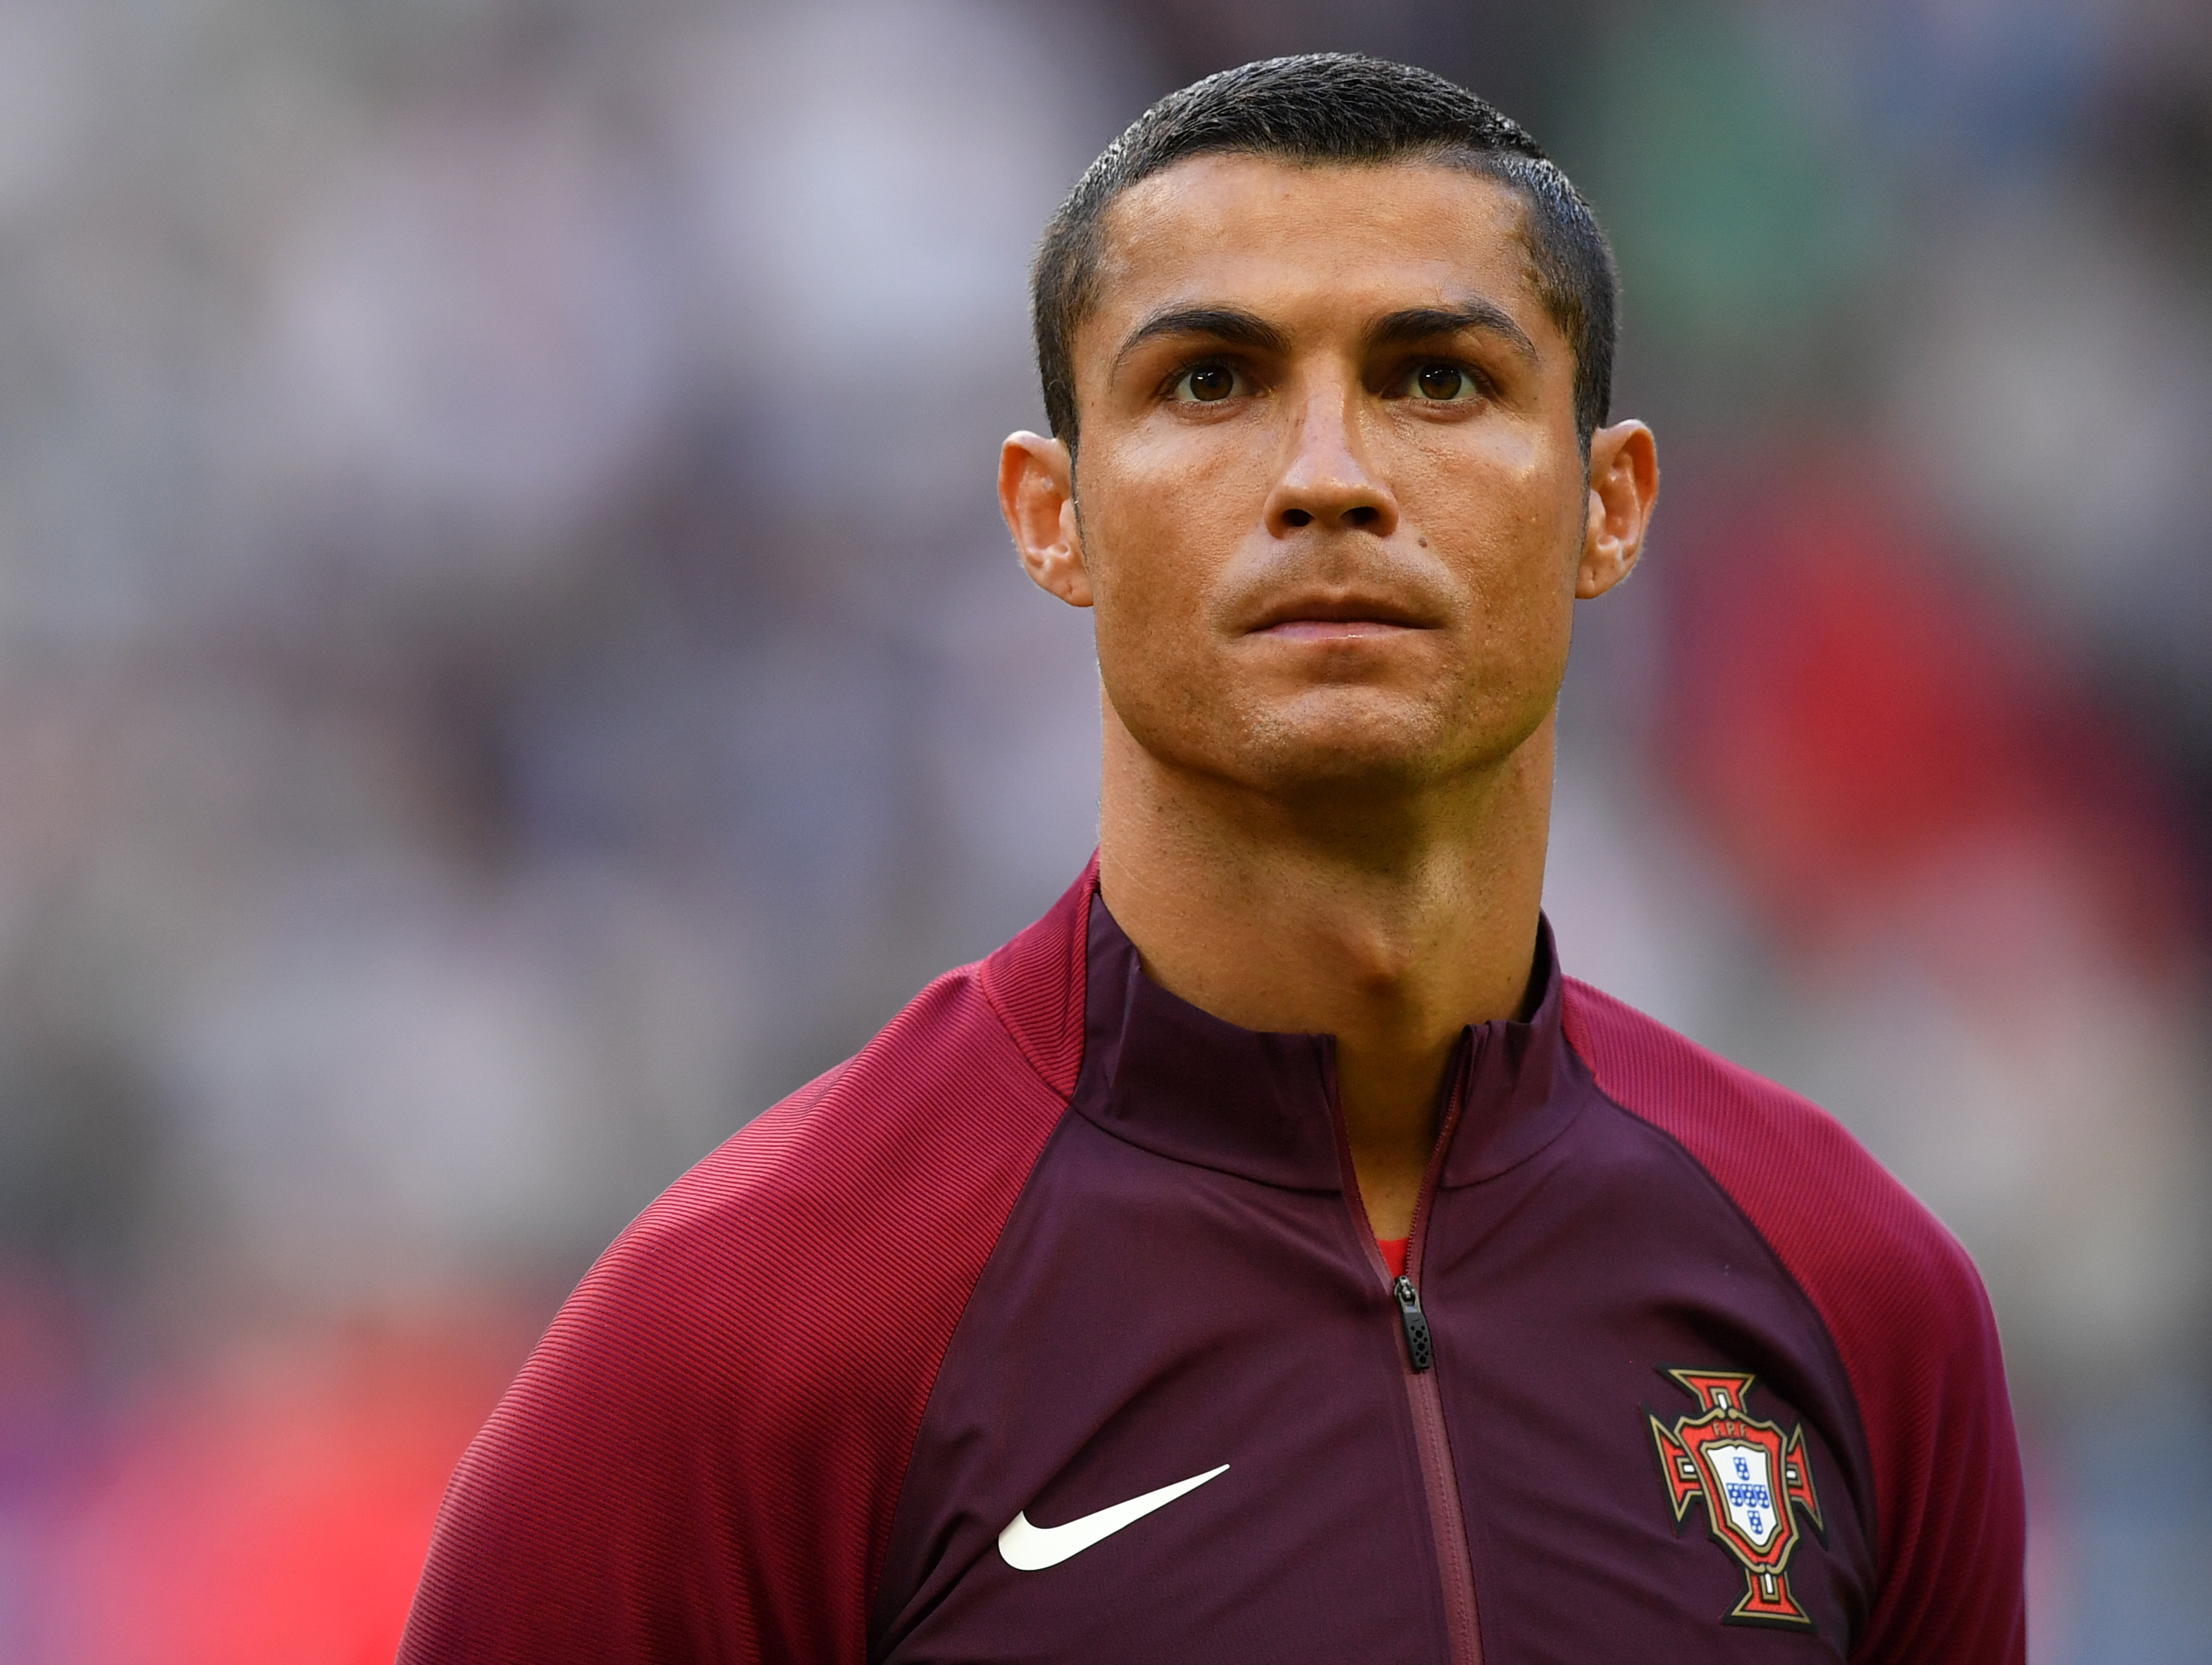 German club offers Cristiano Ronaldo a lifetime's supply of beer if he joins – he's teetotal